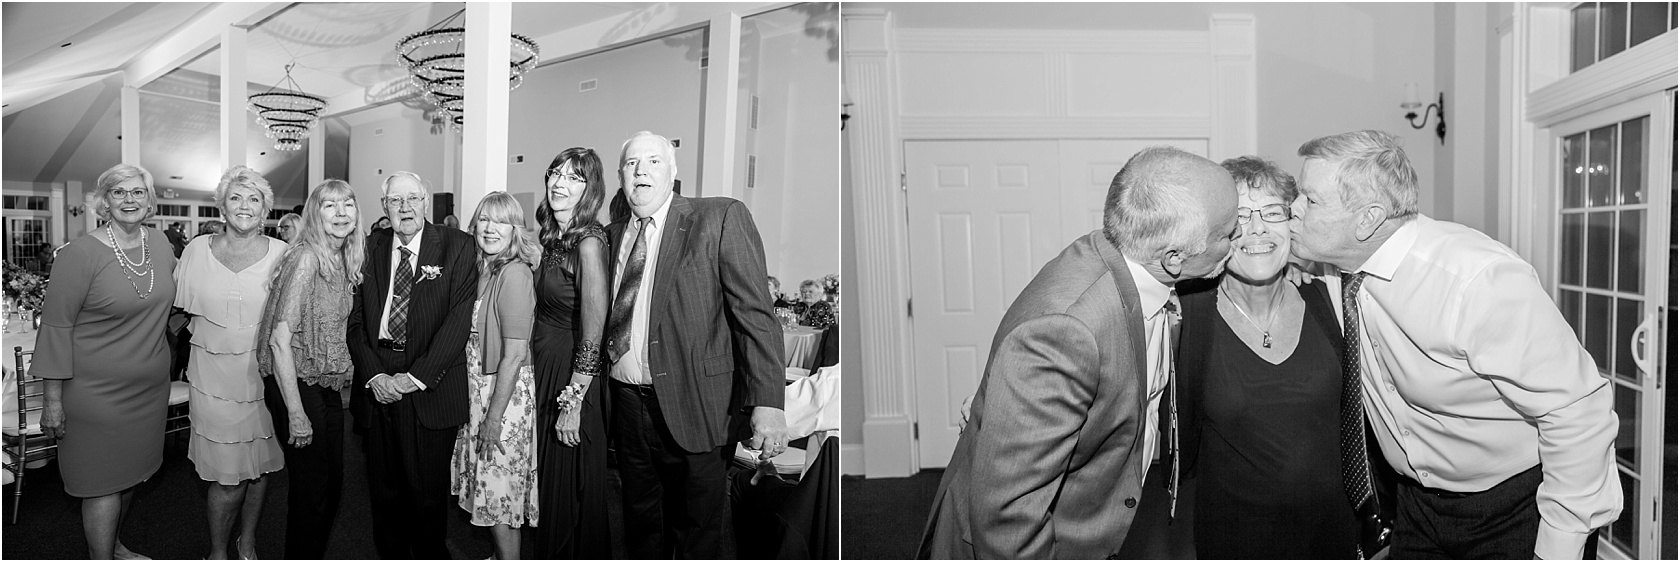 Ousborne Springfield Manor Wedding Living Radiant Photography photos_0175.jpg